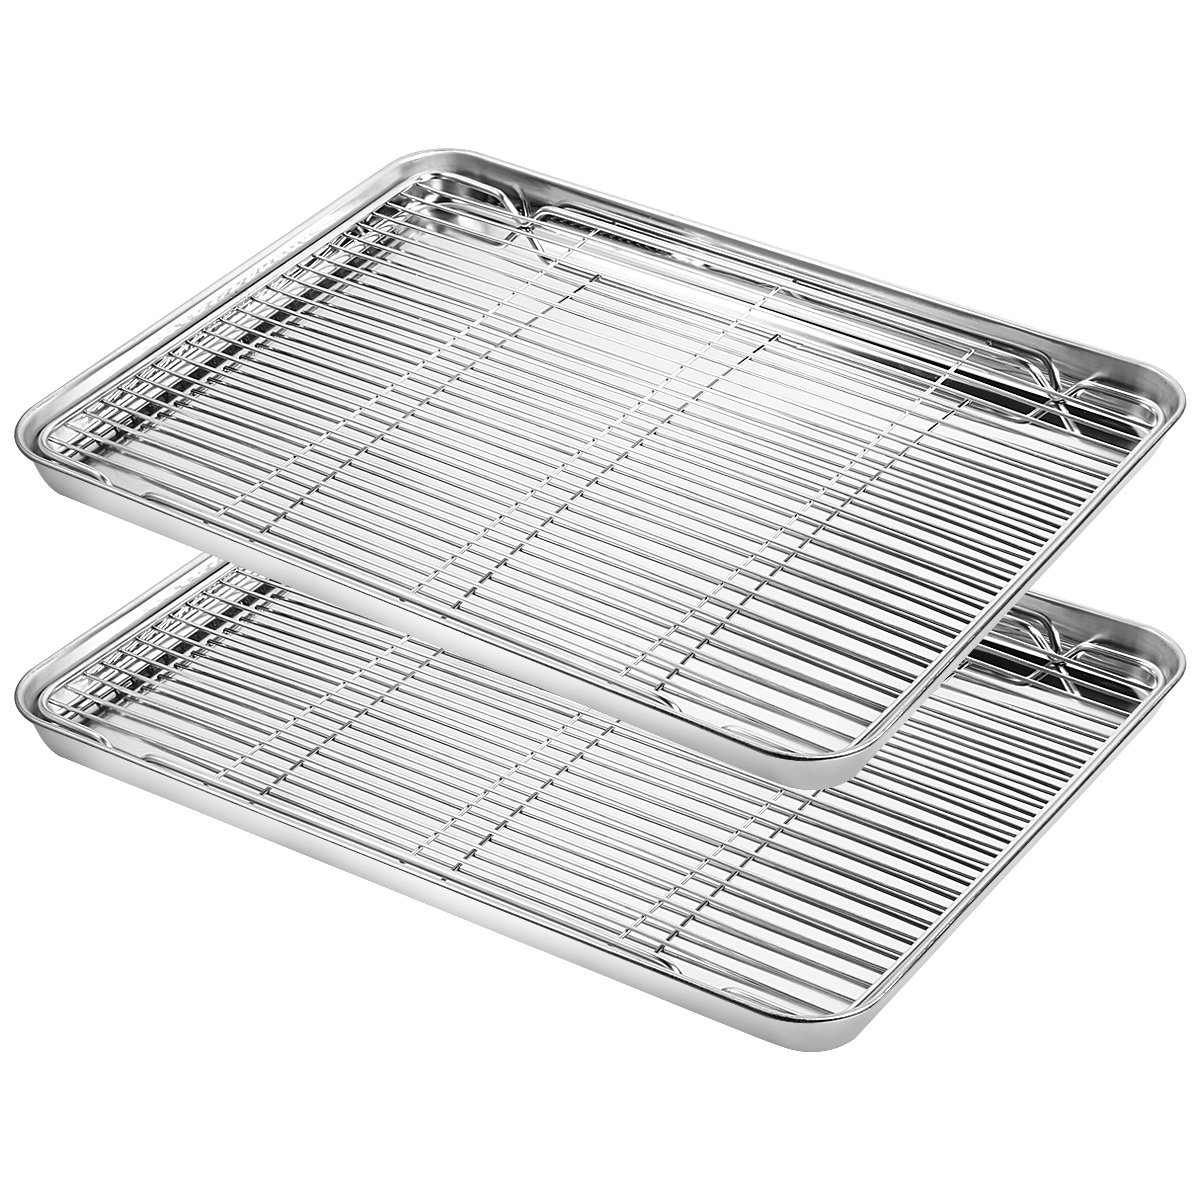 Baking Sheet with Rack Set, Yododo 2 Sets Stainless Steel Baking Pans Tray Cookie Sheet with Cooling Rack, Rectangle Size 16 x 12 x 1 inch, Non Toxic & Healthy- 4 Pack (2 Pans + 2 Racks) baking sheet rack set